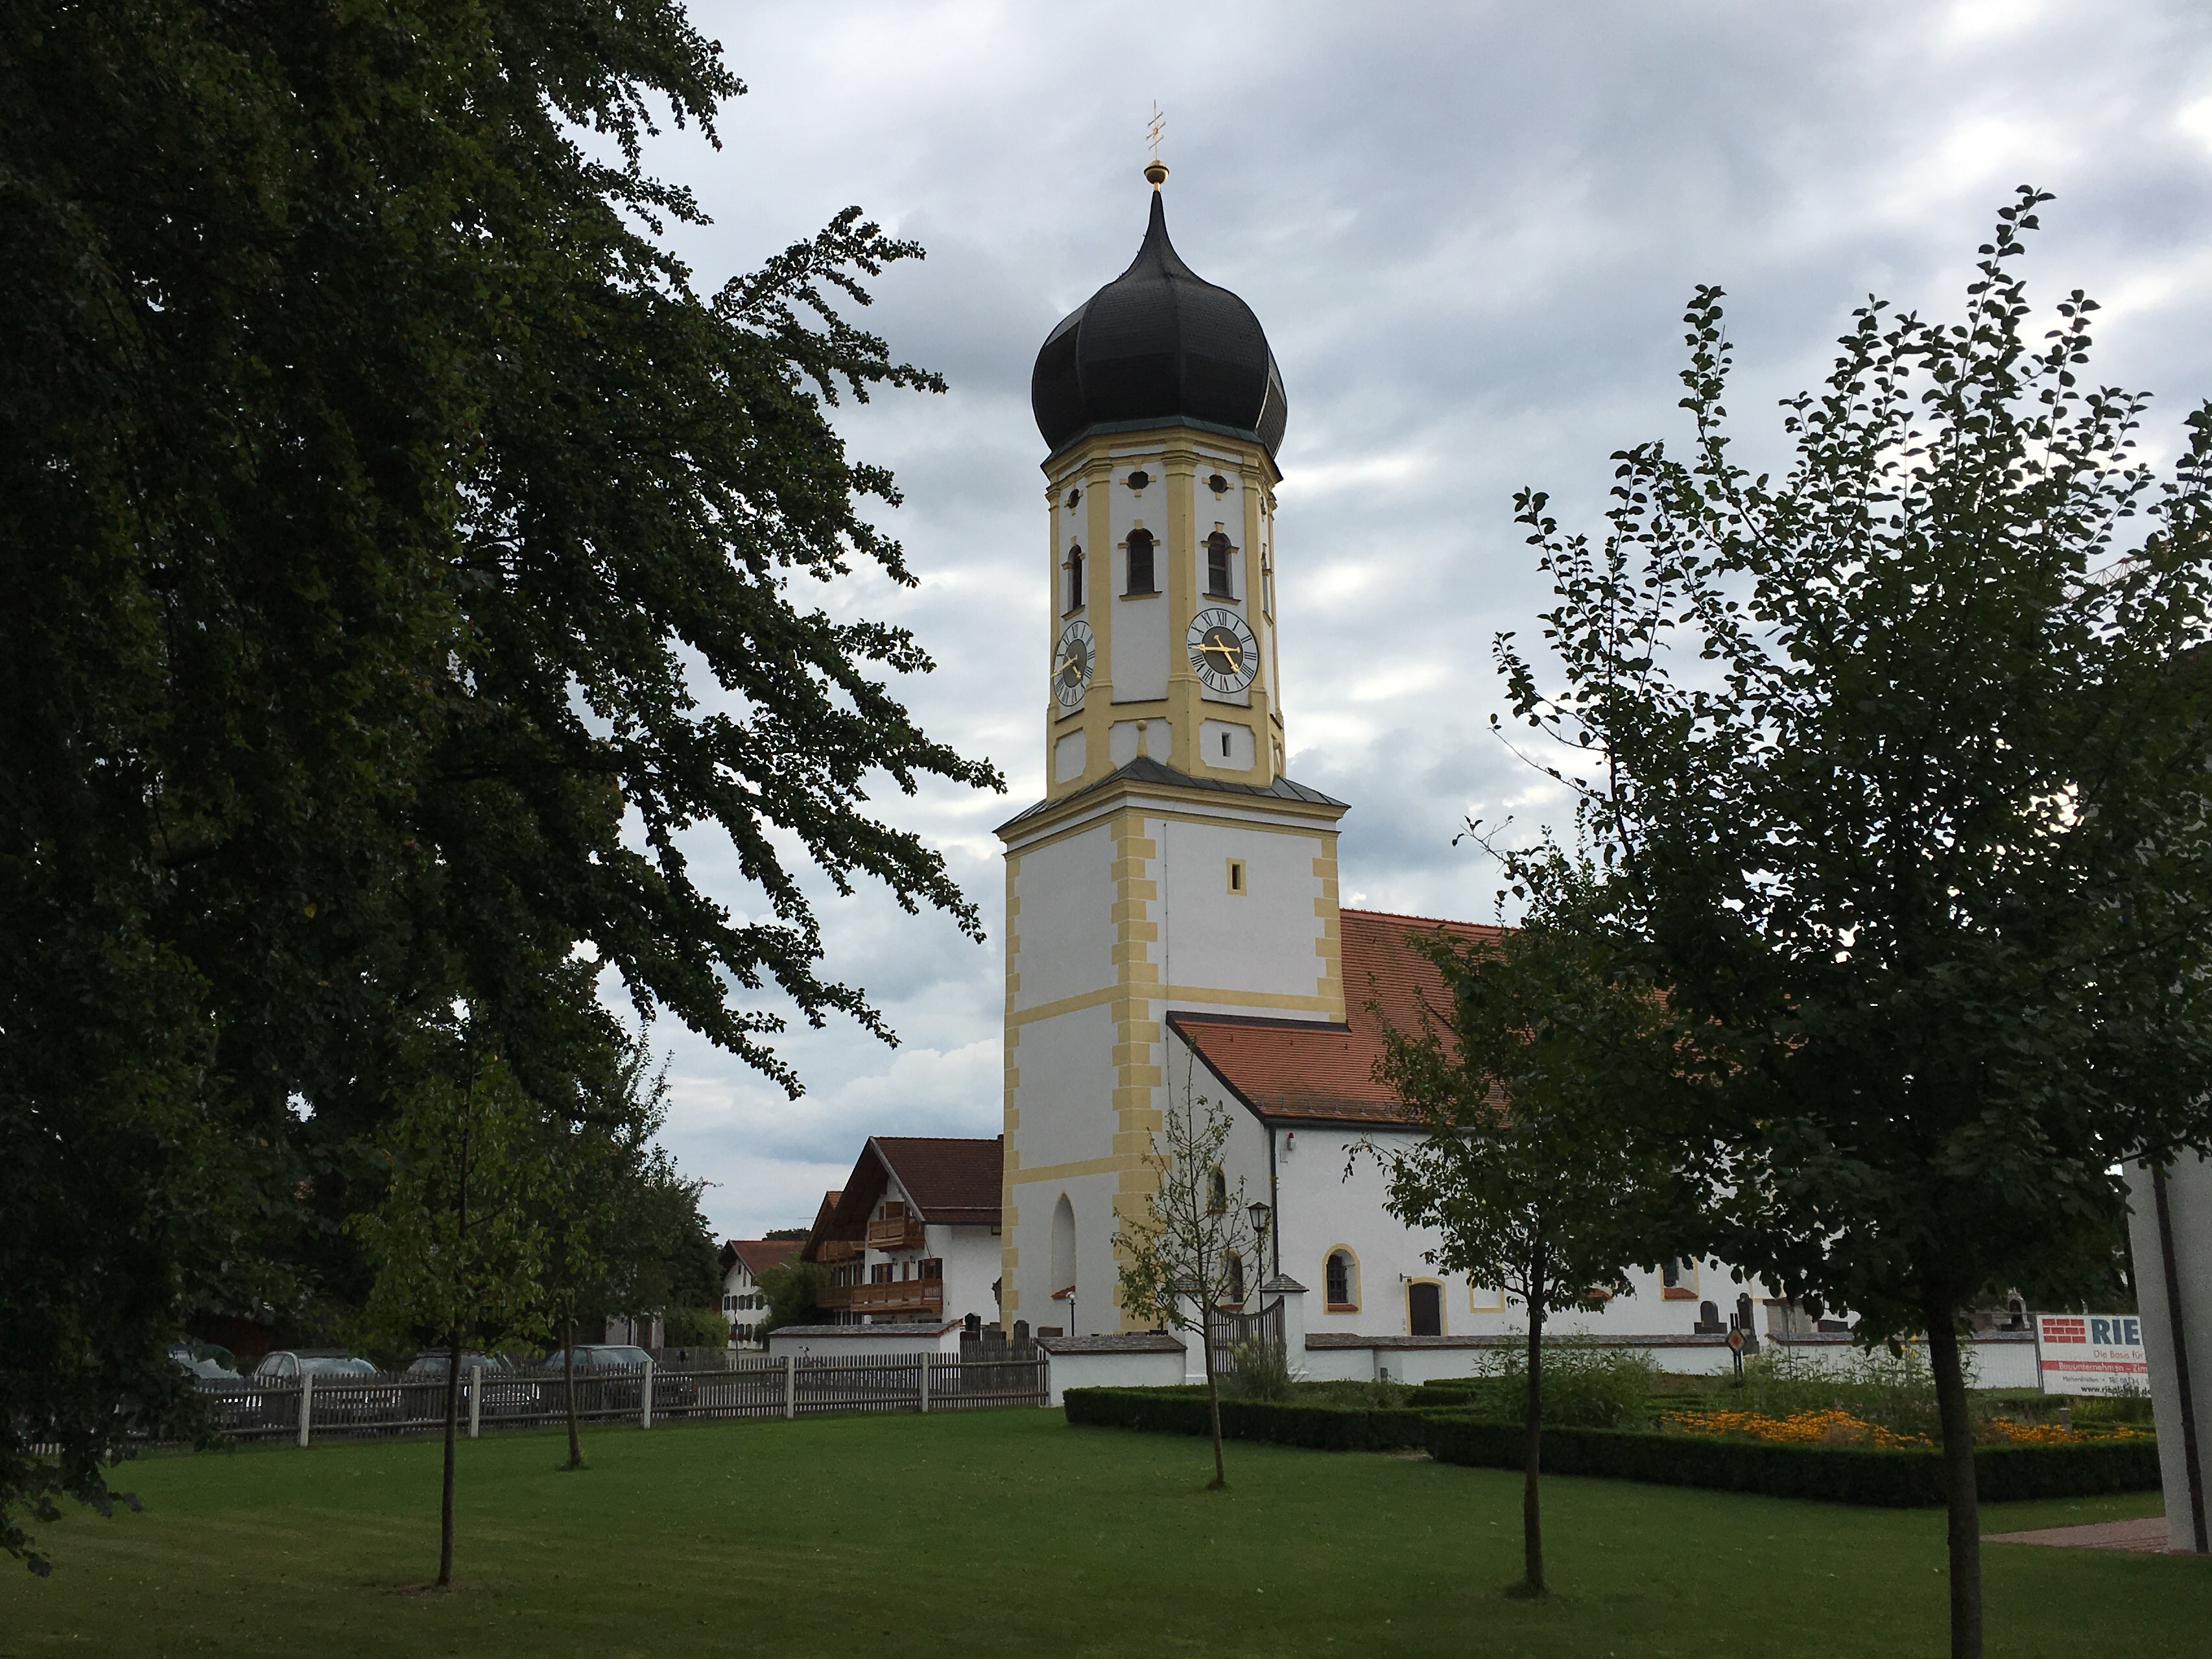 Pfarrkirche Sankt Andreas is a nearby walk from Brauereigasthof Hotel Aying in Aying, Germany.